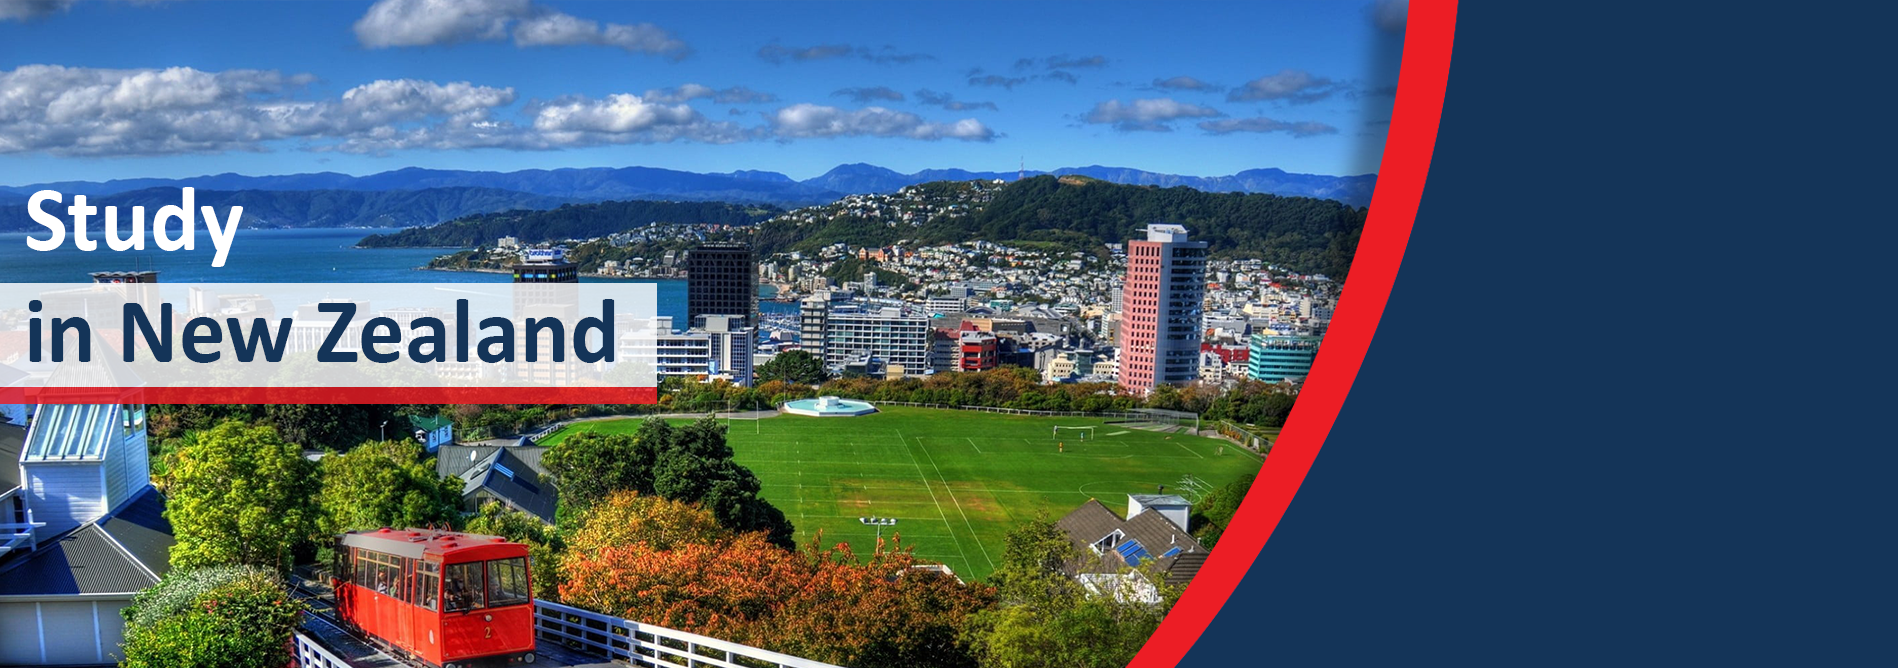 Study in New Zealand, Study in Auckland University, New Zealand Study Consultant Faridabad